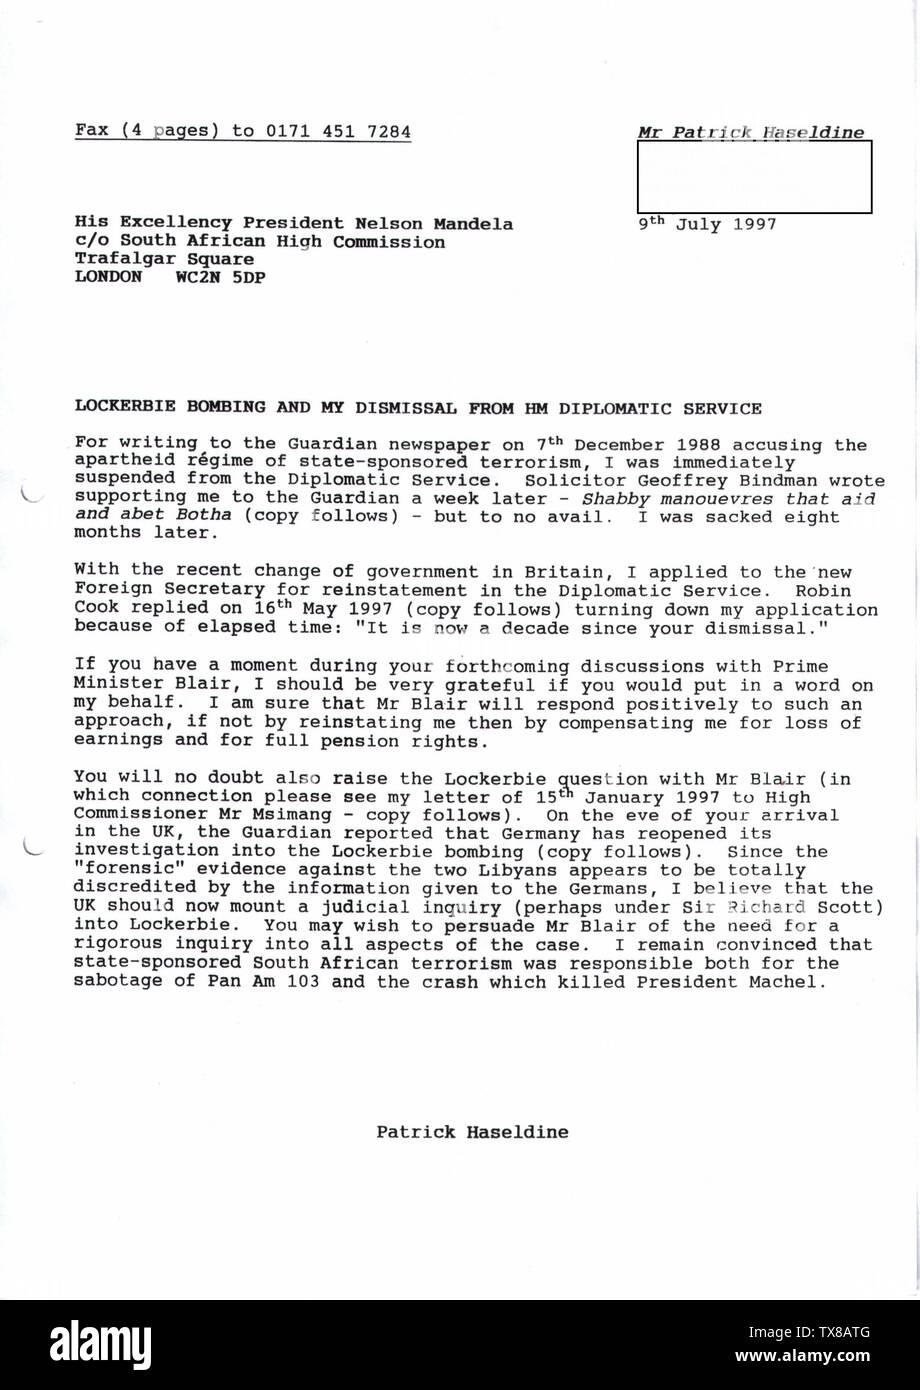 'English: To coincide with President Nelson Mandela's visit to London in July 1997, I wrote to him c/o the South African High Commission on the subjects of the Lockerbie bombing and my dismissal from HM Diplomatic Service. The Administrative Secretary in the Office of the President in Cape Town replied on 22 August 1997 as follows: I acknowledge with thanks receipt of the letter dated 9 July 1997 which you addressed to the President. The matter will be brought to his attention as soon as possible.PJHaseldine (talk) 15:12, 24 June 2008 (UTC); 24 June 2008 (original upload date); Transferred fro - Stock Image